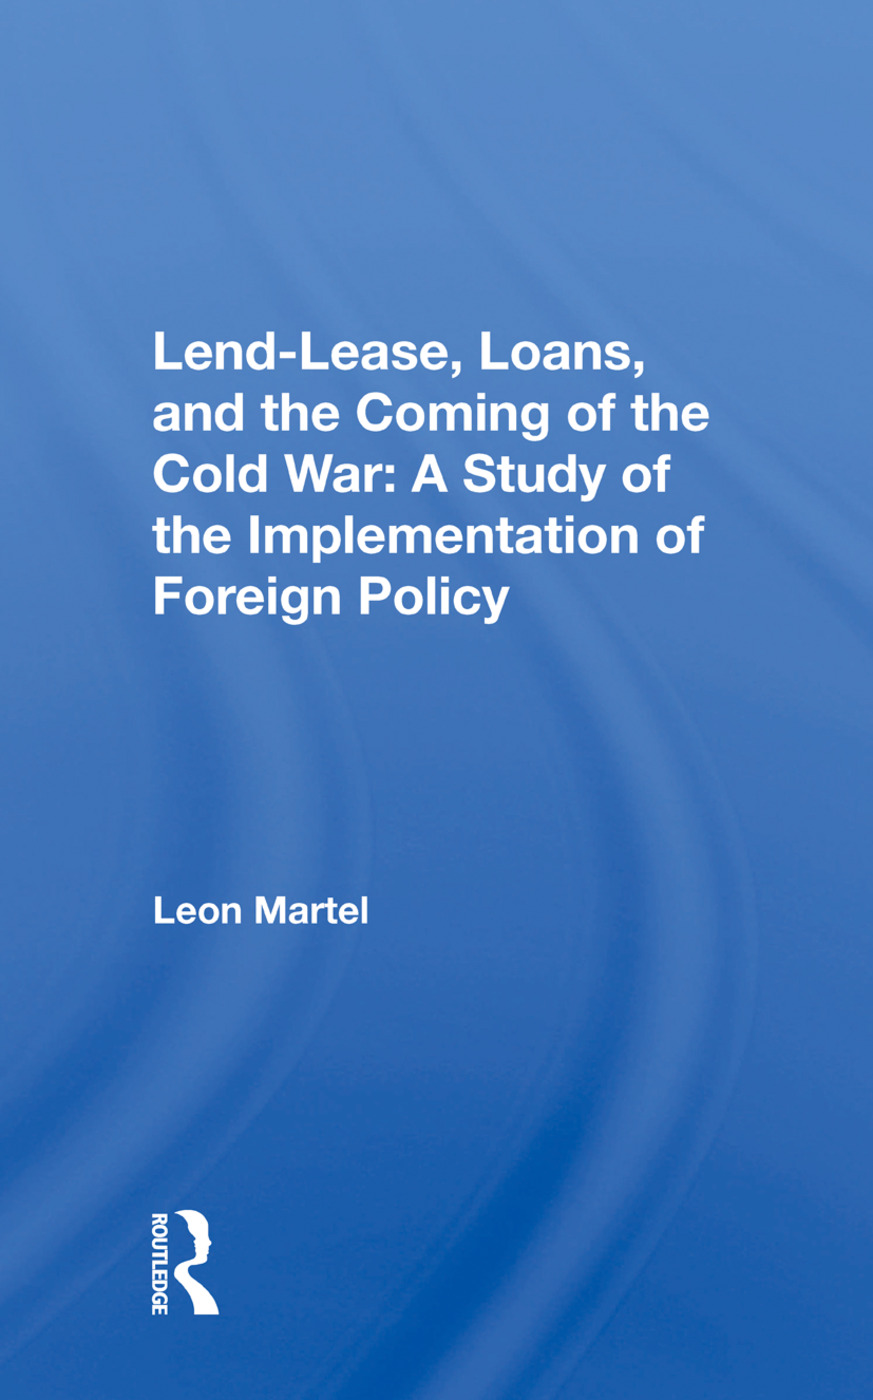 Lend-lease, Loans, And The Coming Of The Cold War: A Study Of The Implementation Of Foreign Policy book cover